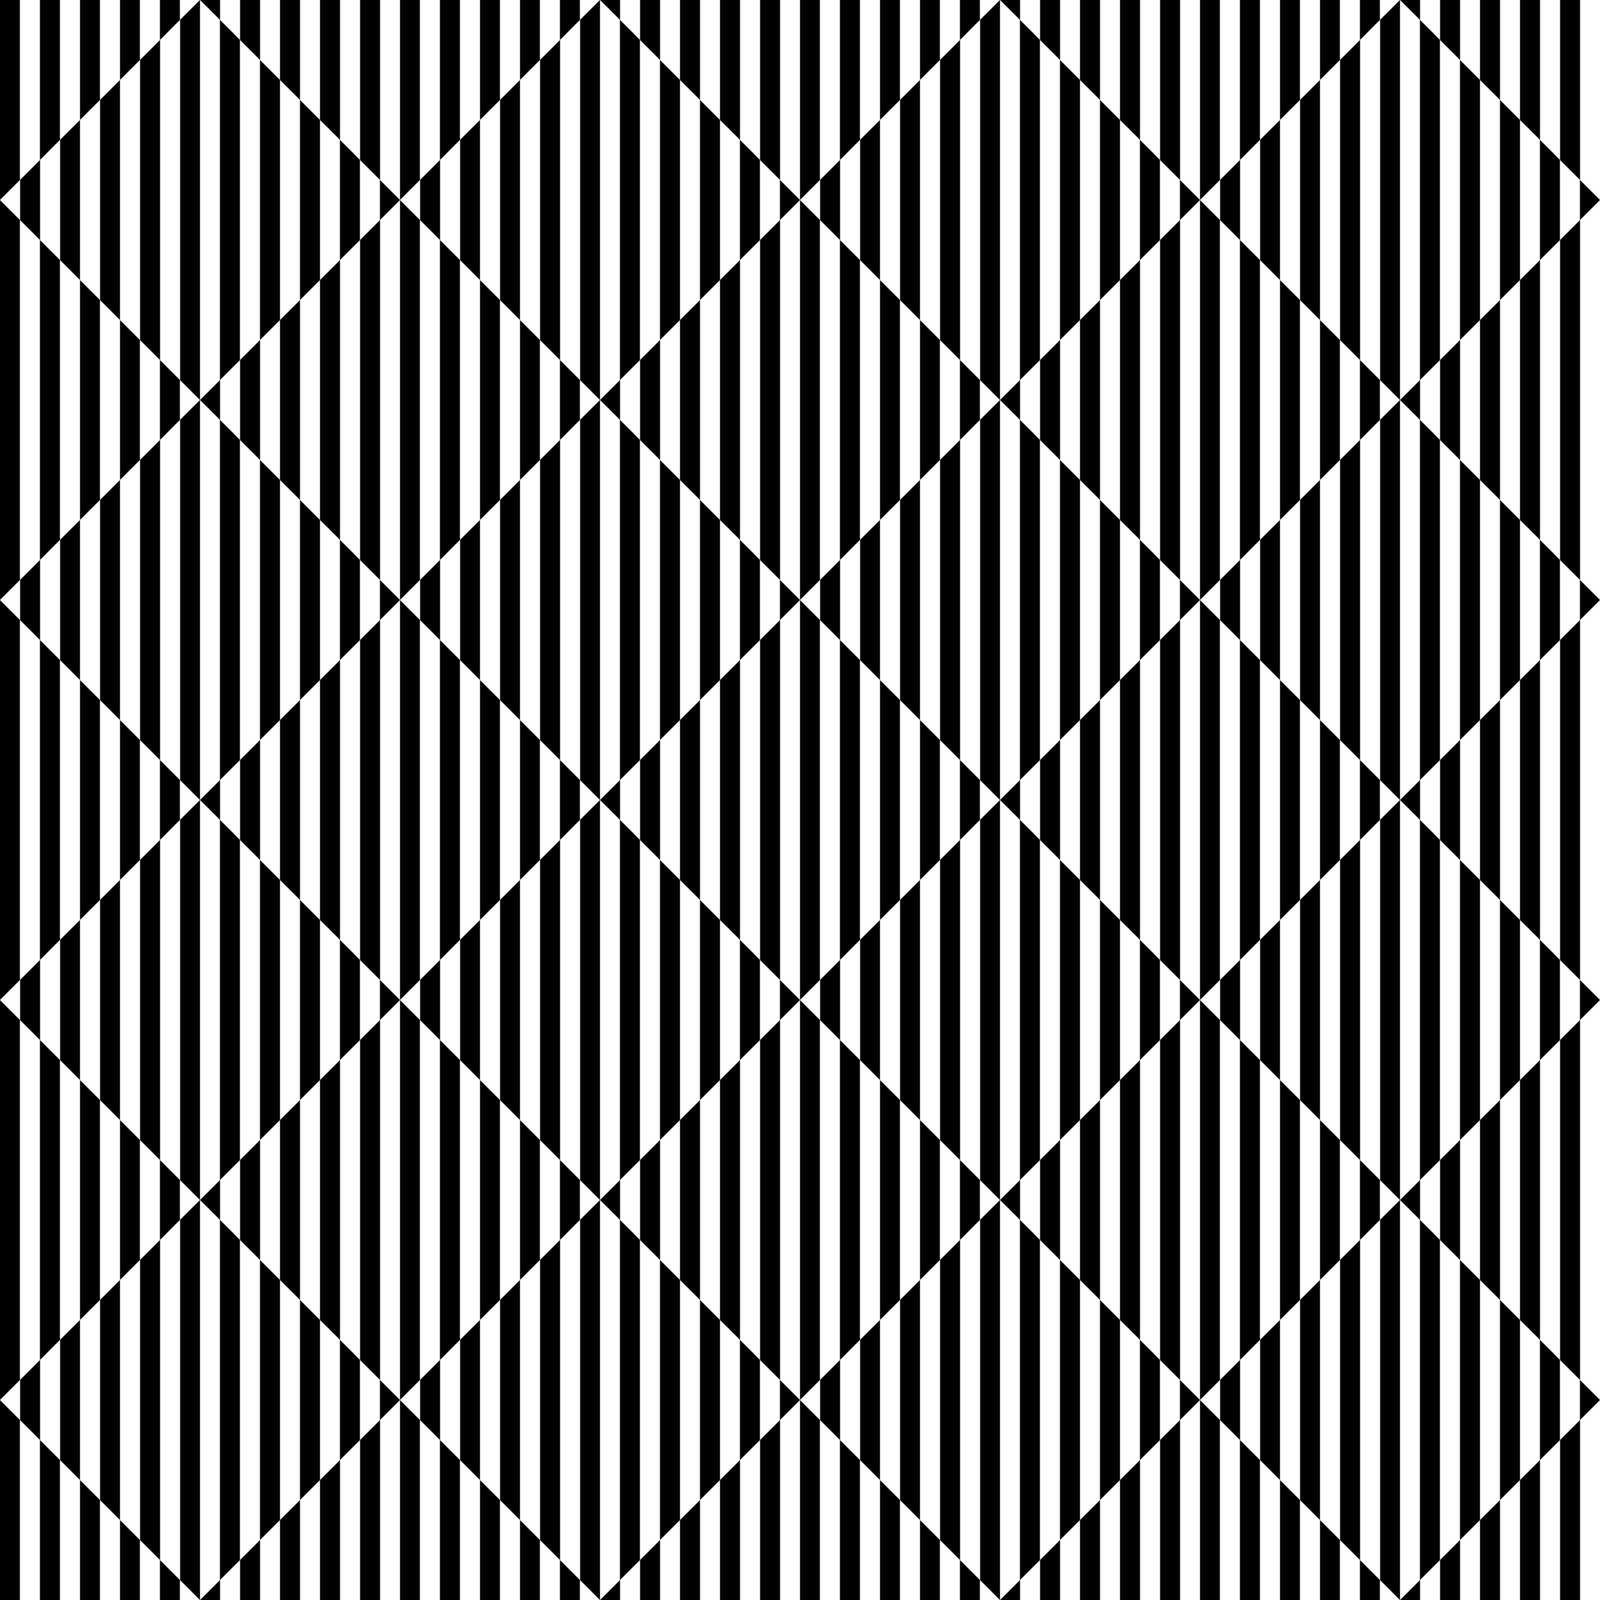 Seamless illustrated pattern - optical illusion - illustration appears to be moving